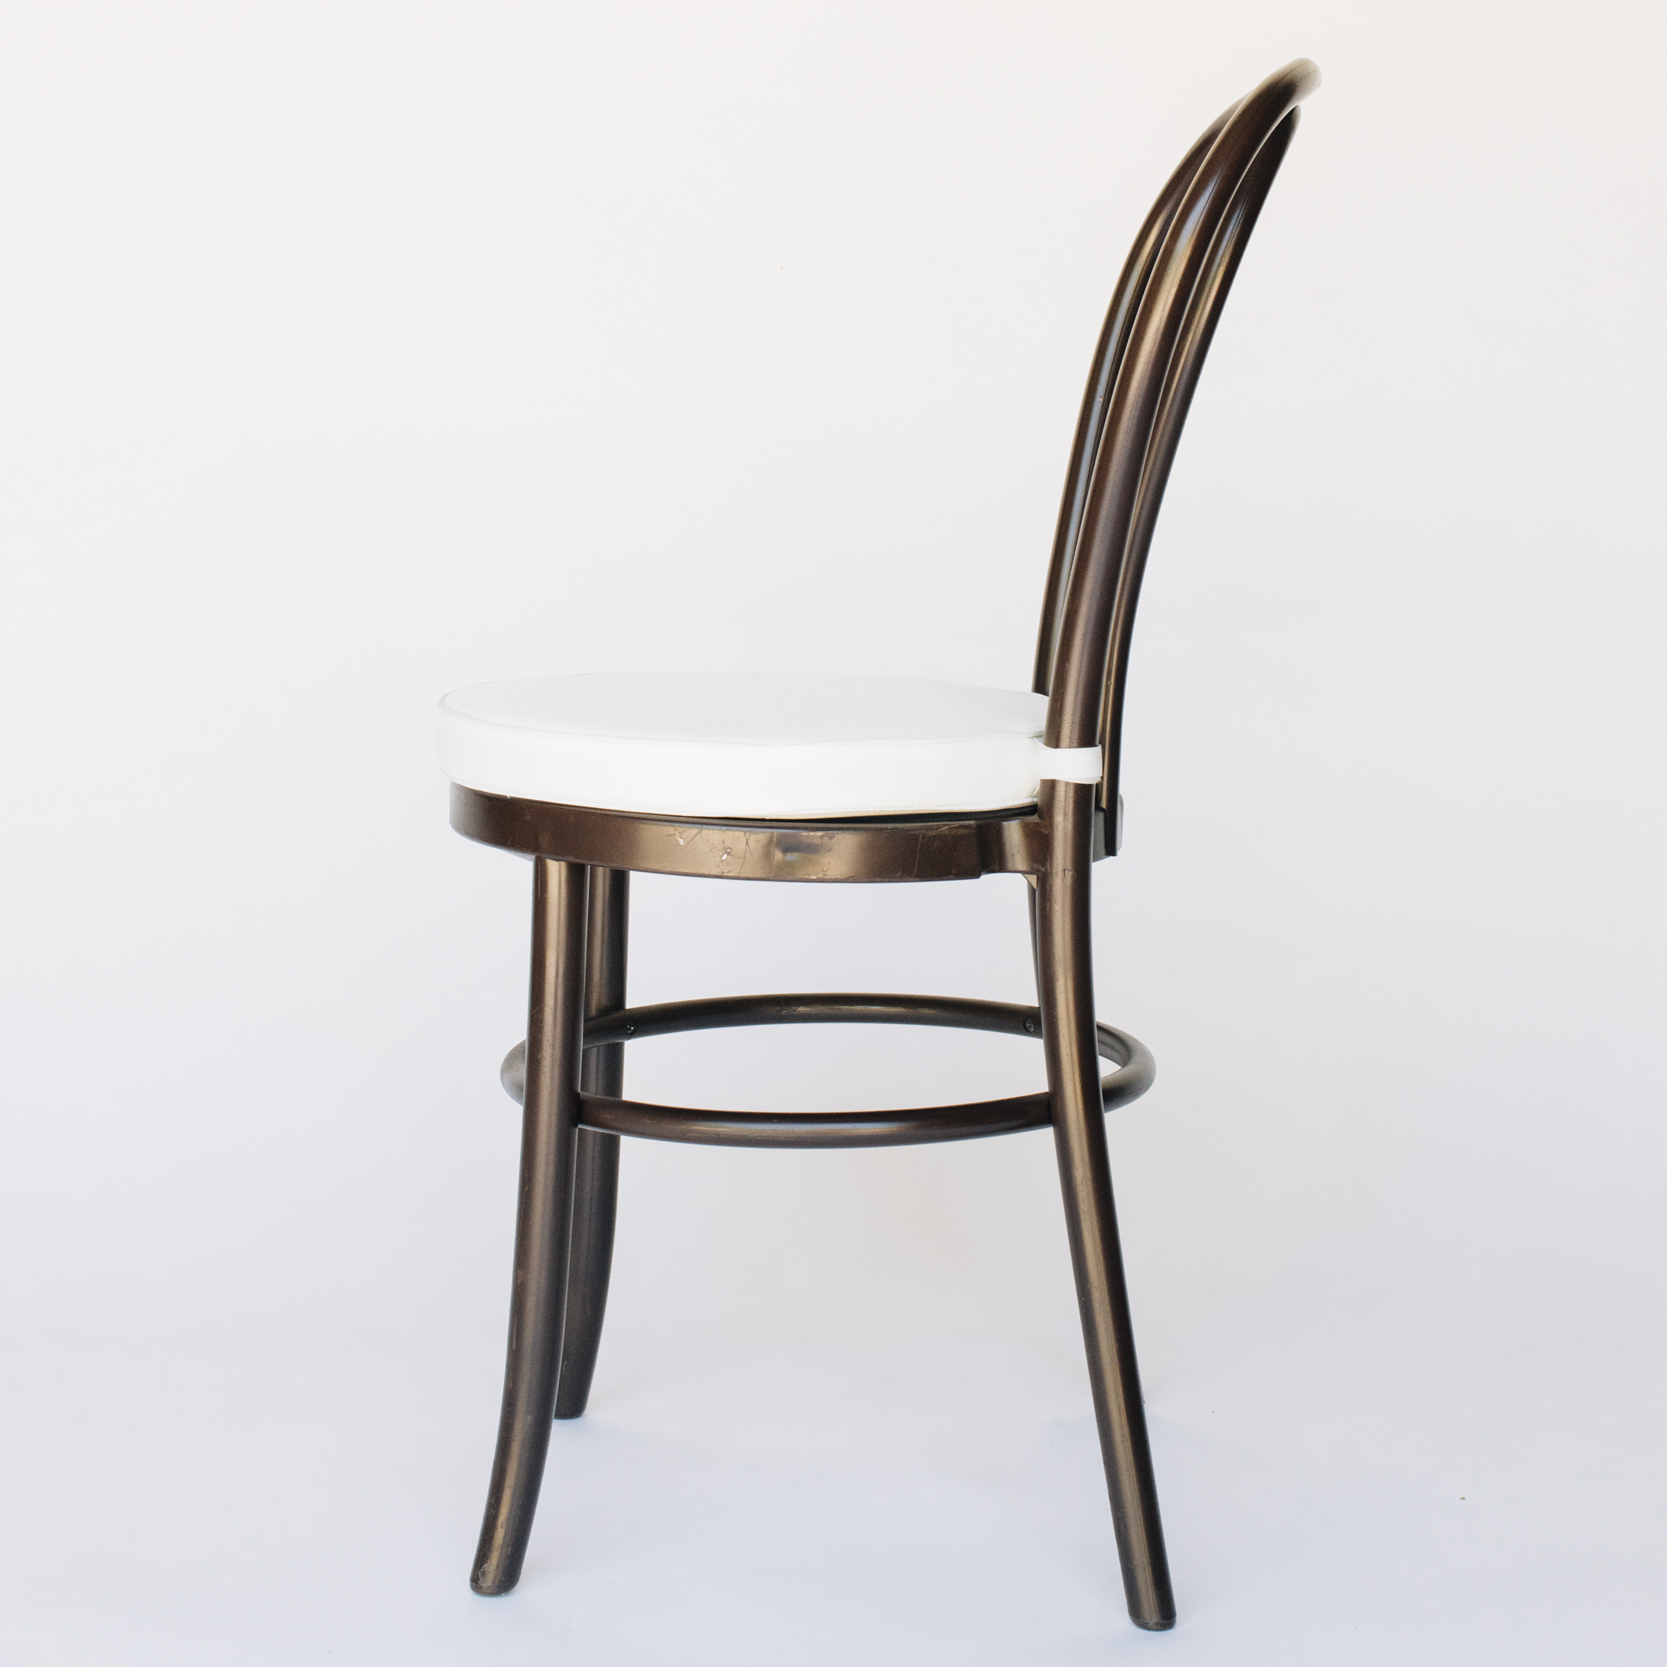 CHAIR_METAL_2.jpg